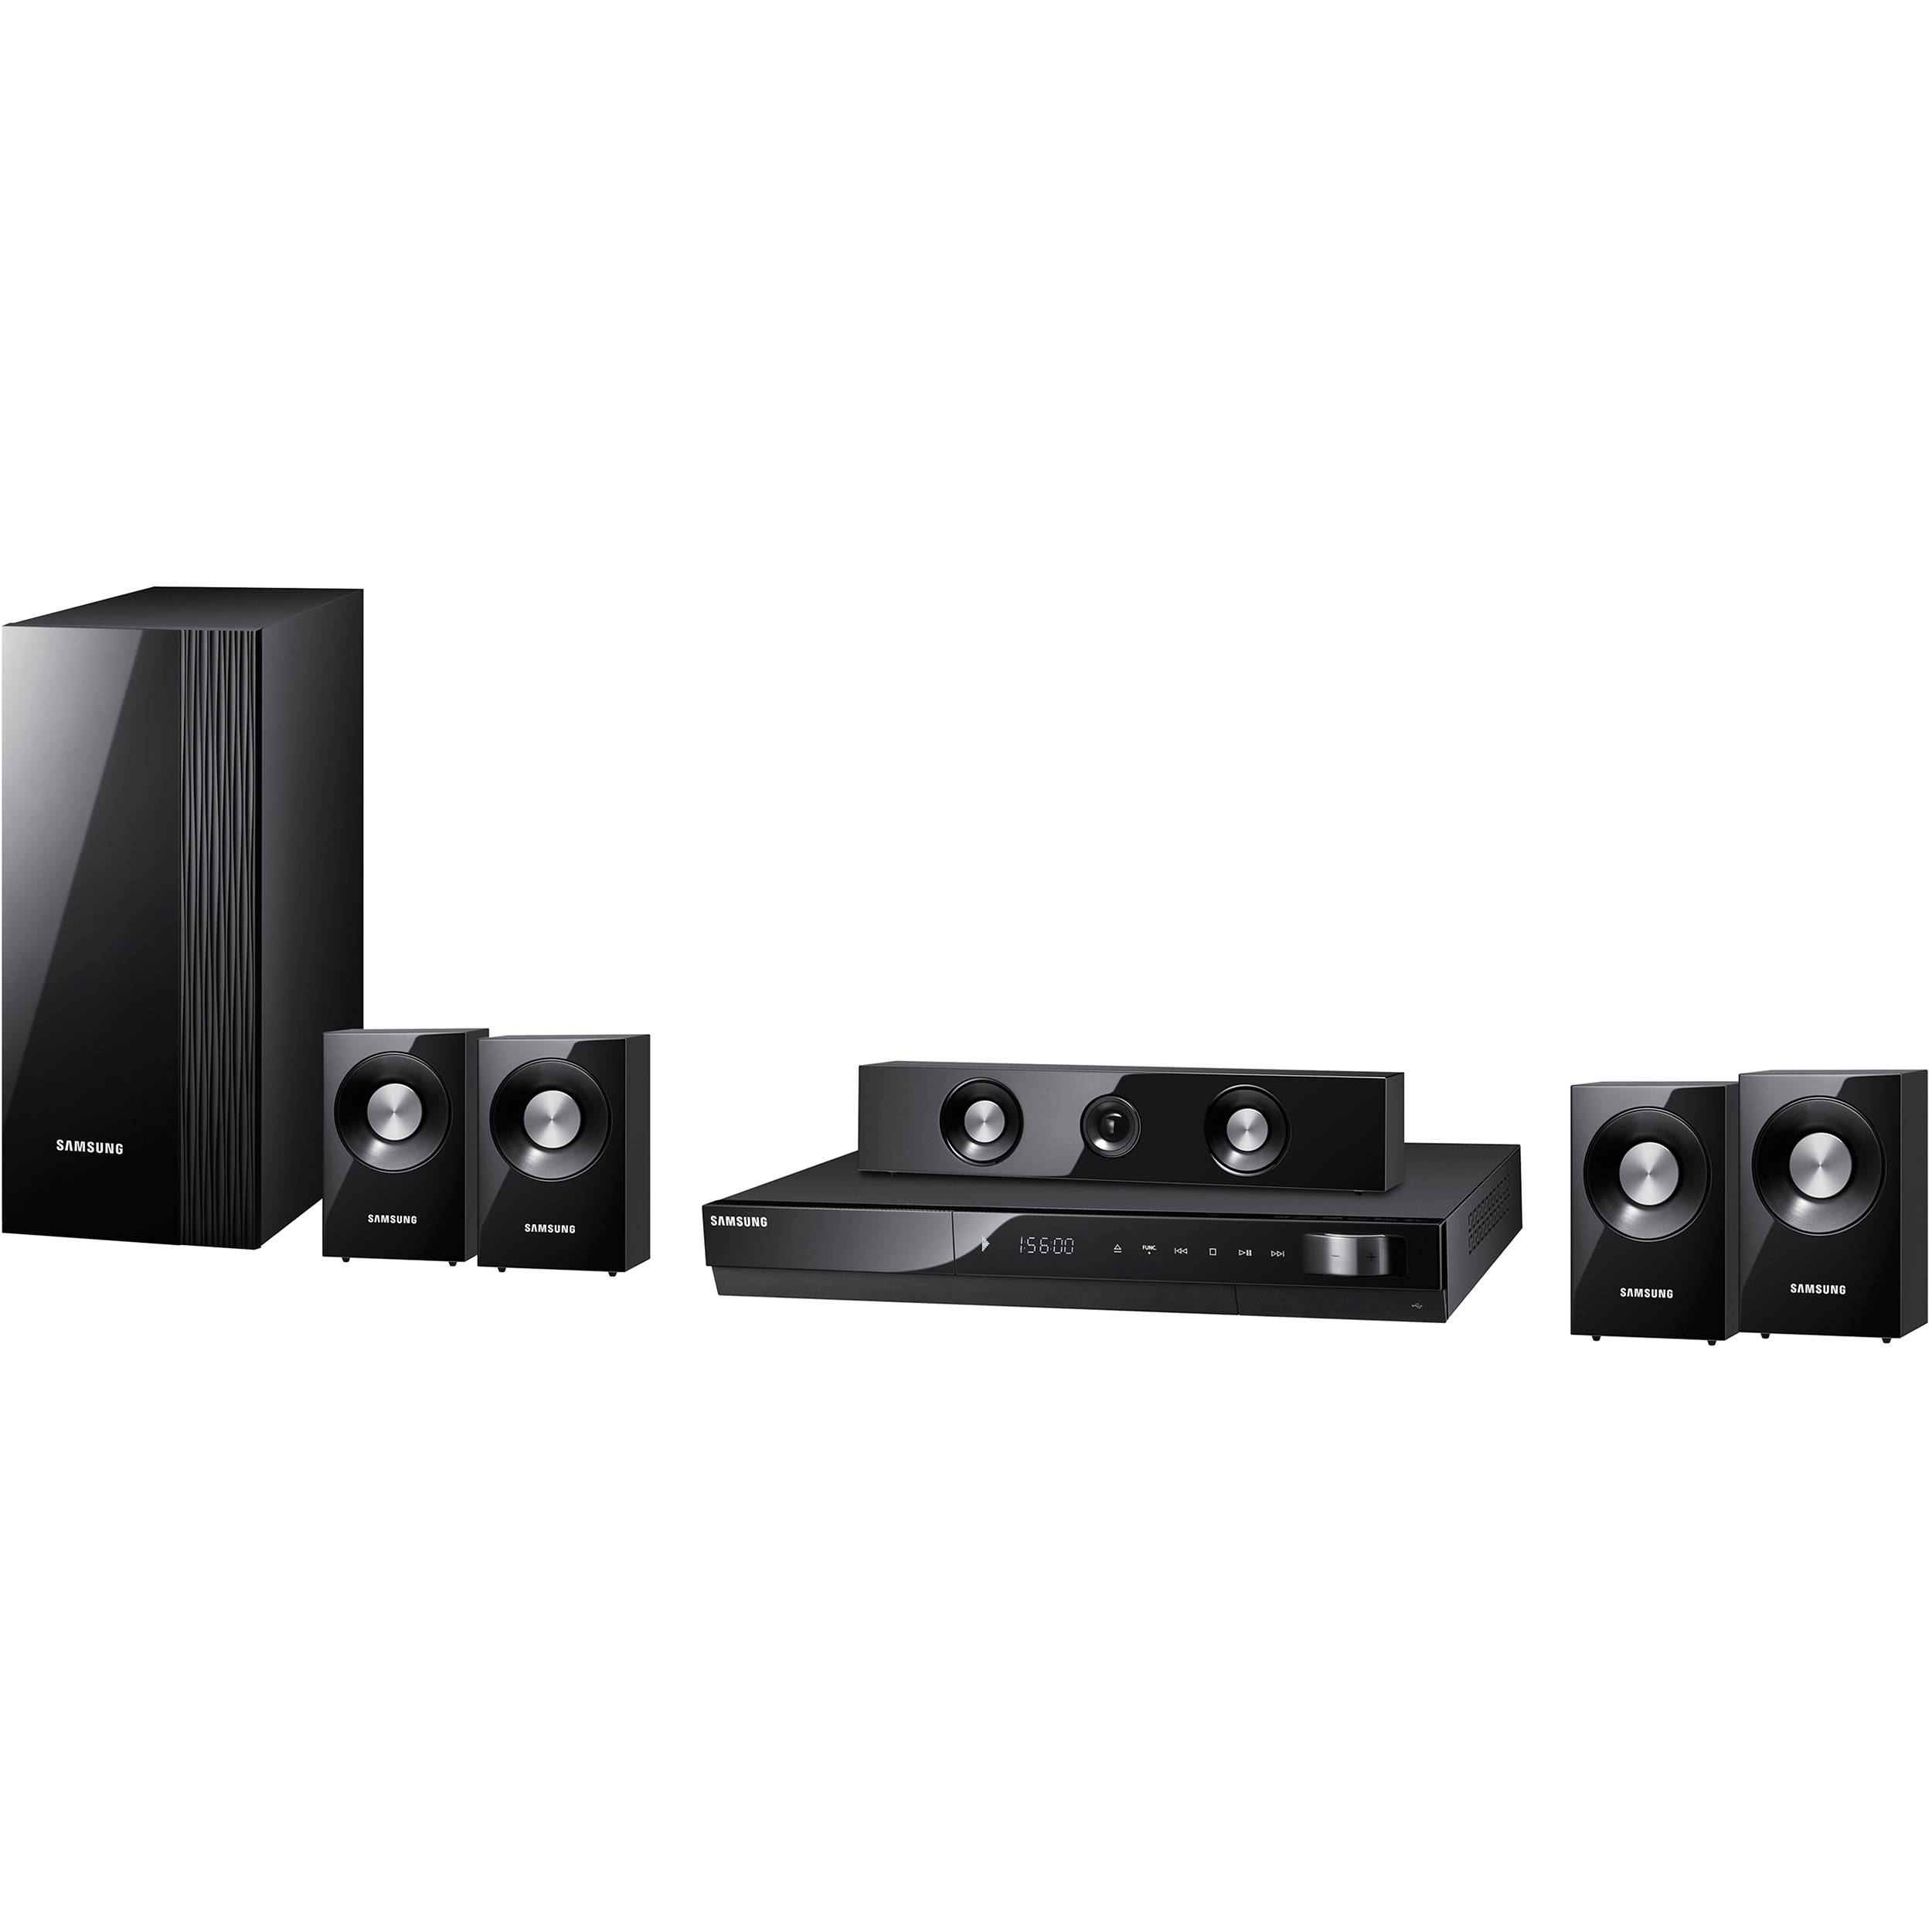 samsung ht c550 5 1 channel home theater system ht c550 b h. Black Bedroom Furniture Sets. Home Design Ideas